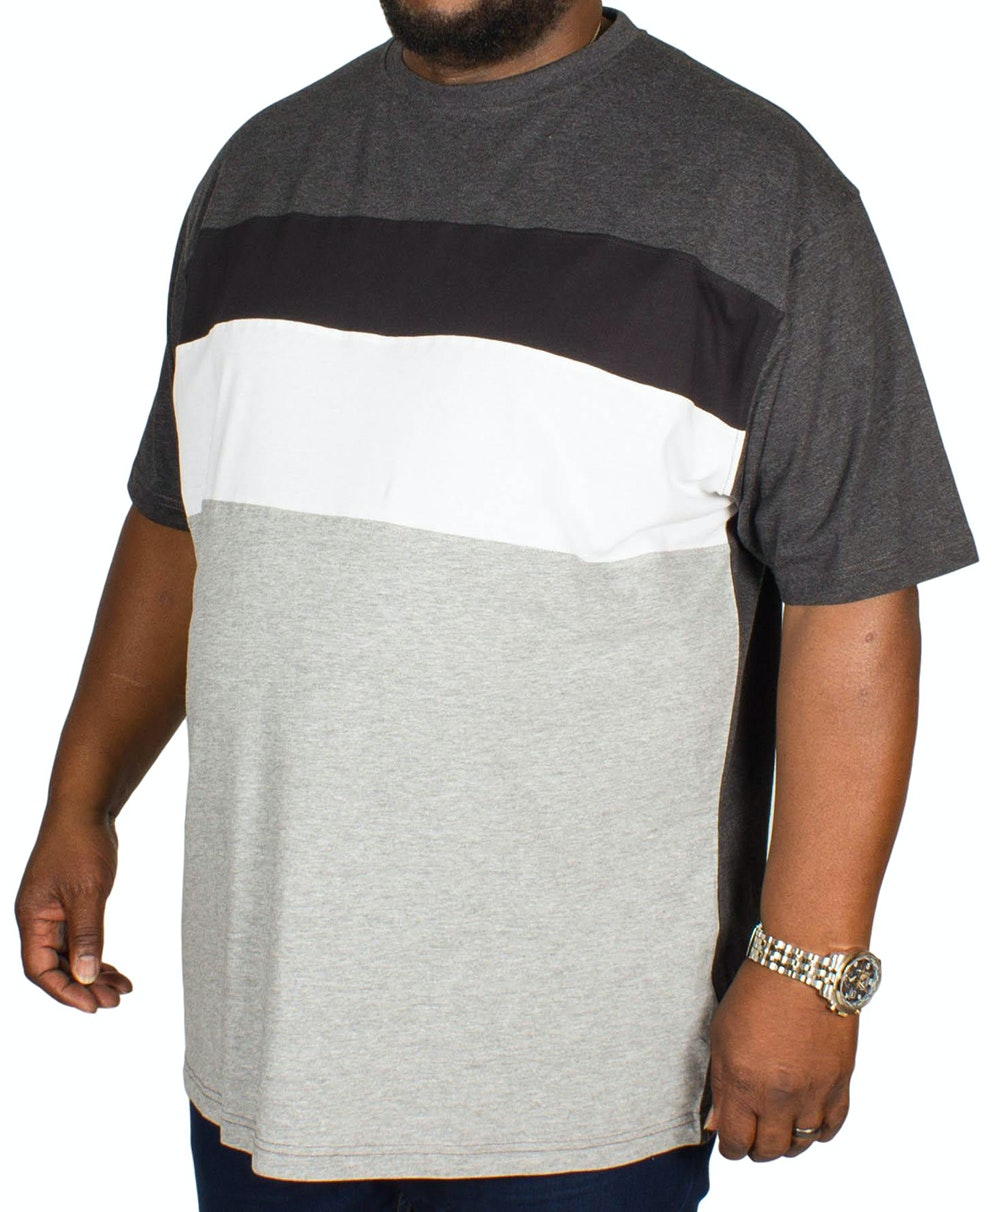 Kam Cut and Sew T-shirt Charcoal